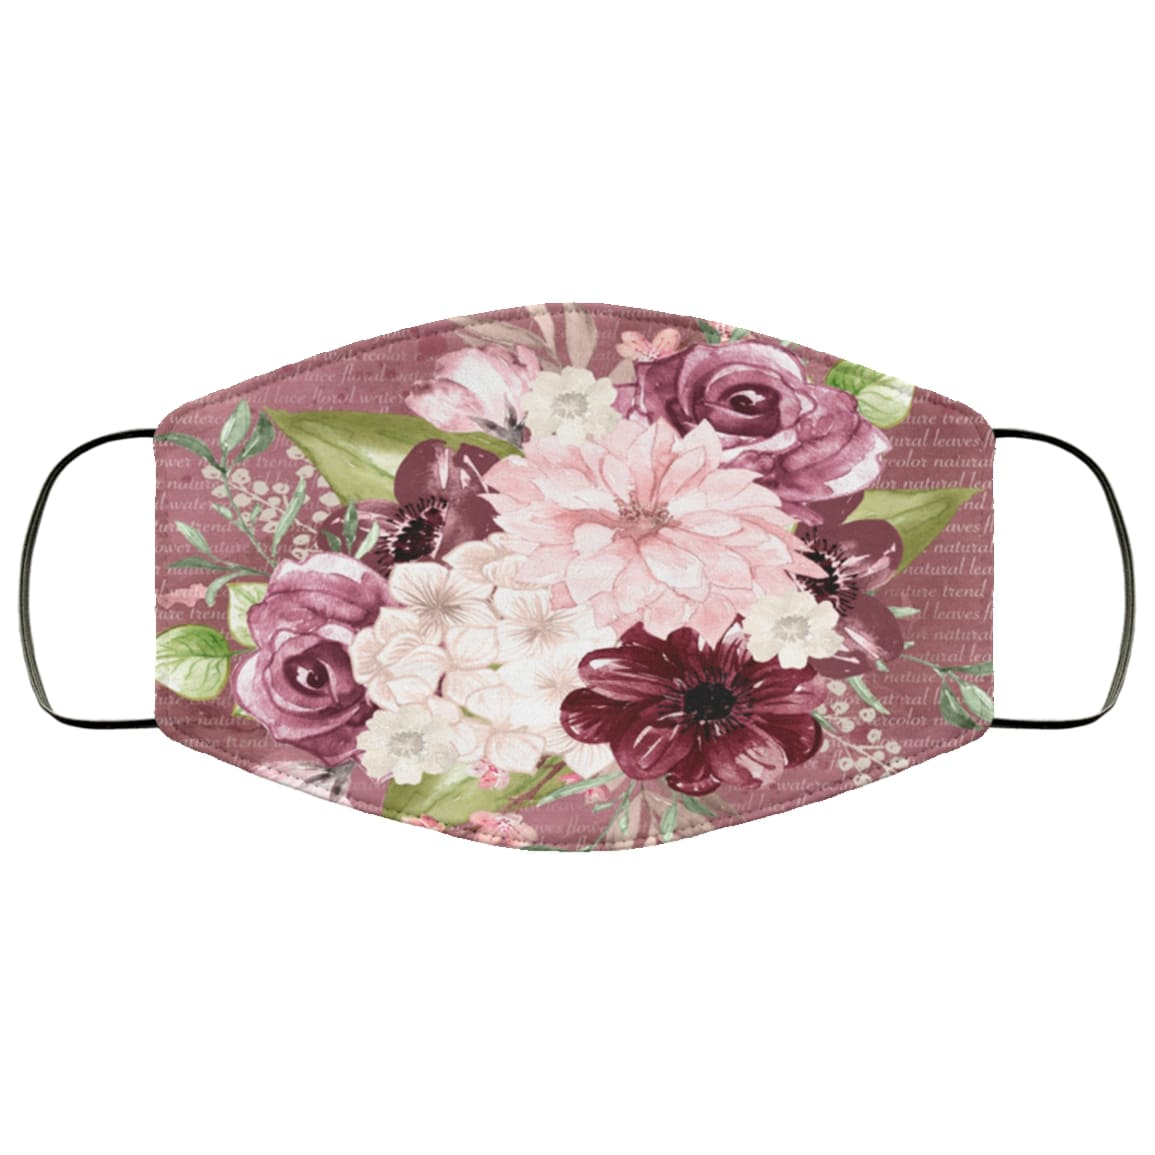 Spring flowers full over printed face mask 4